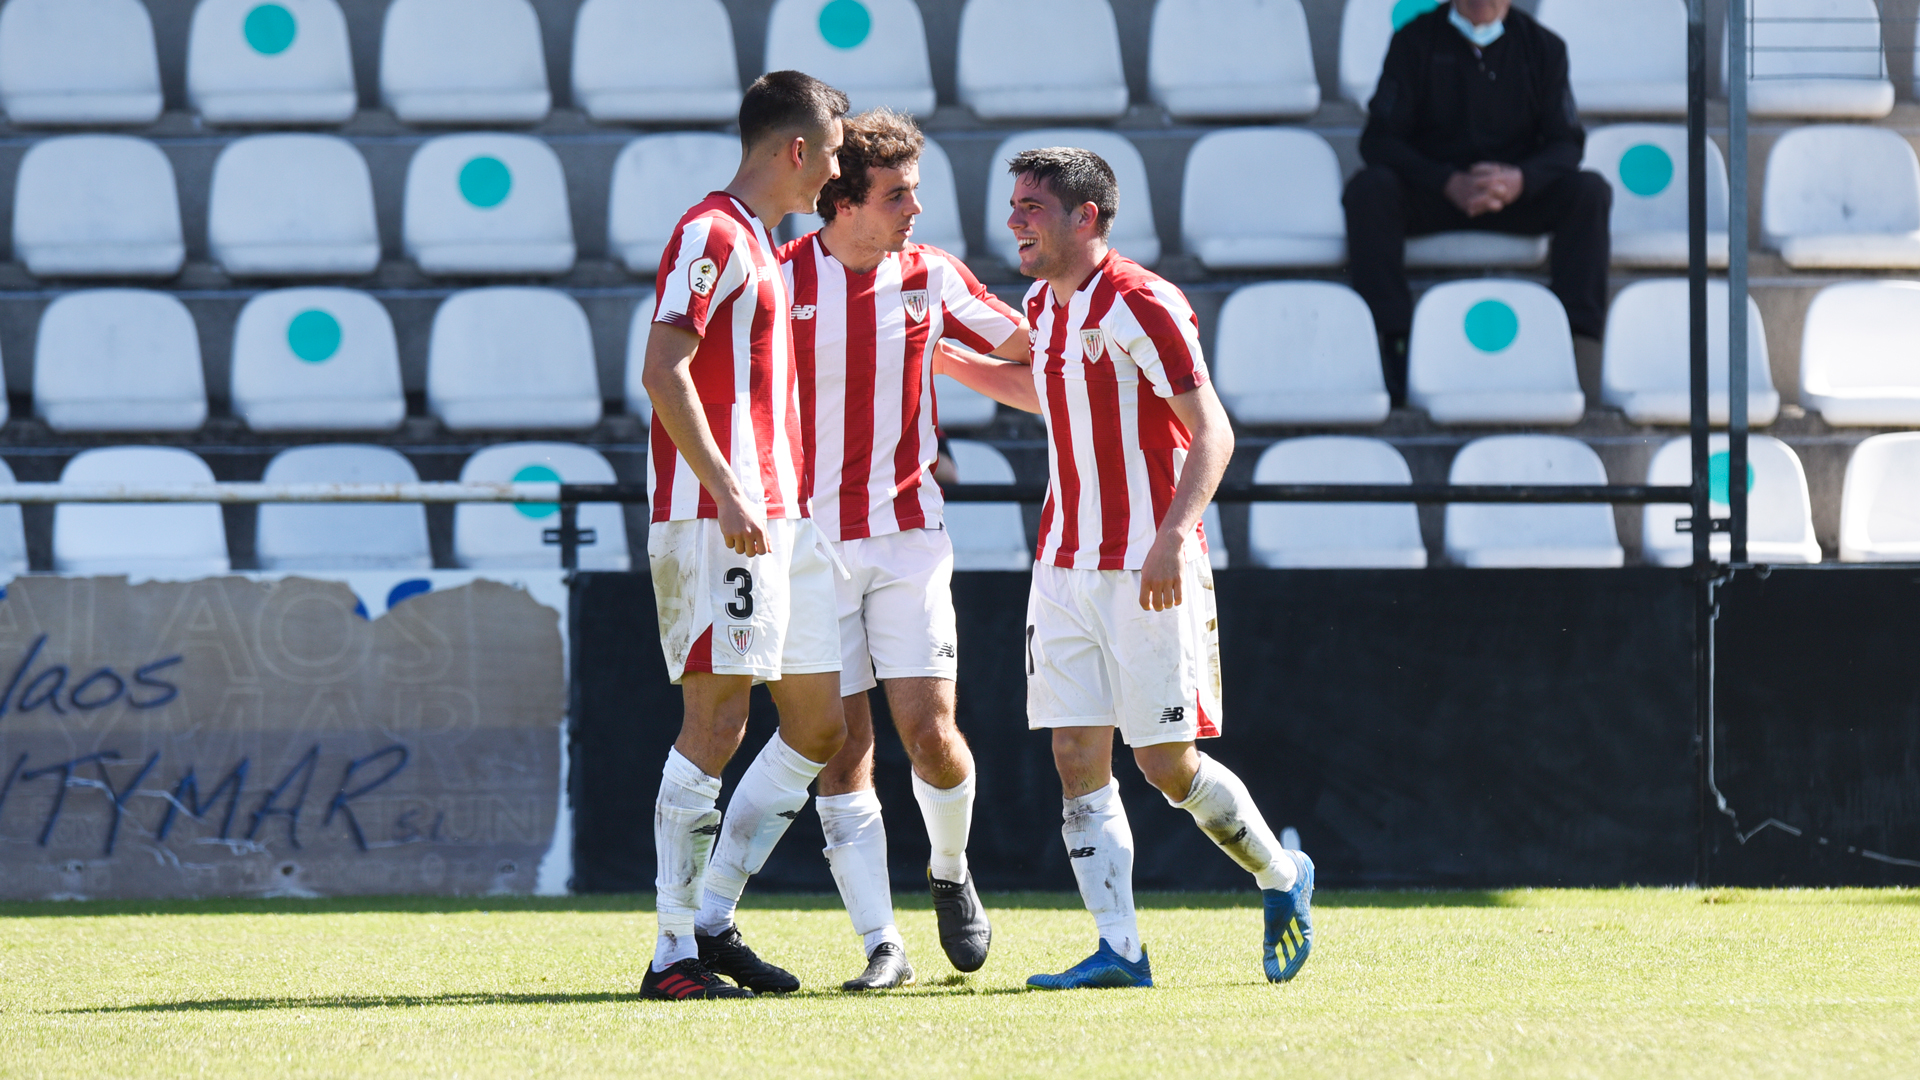 El Bilbao Athletic arranca la segunda fase